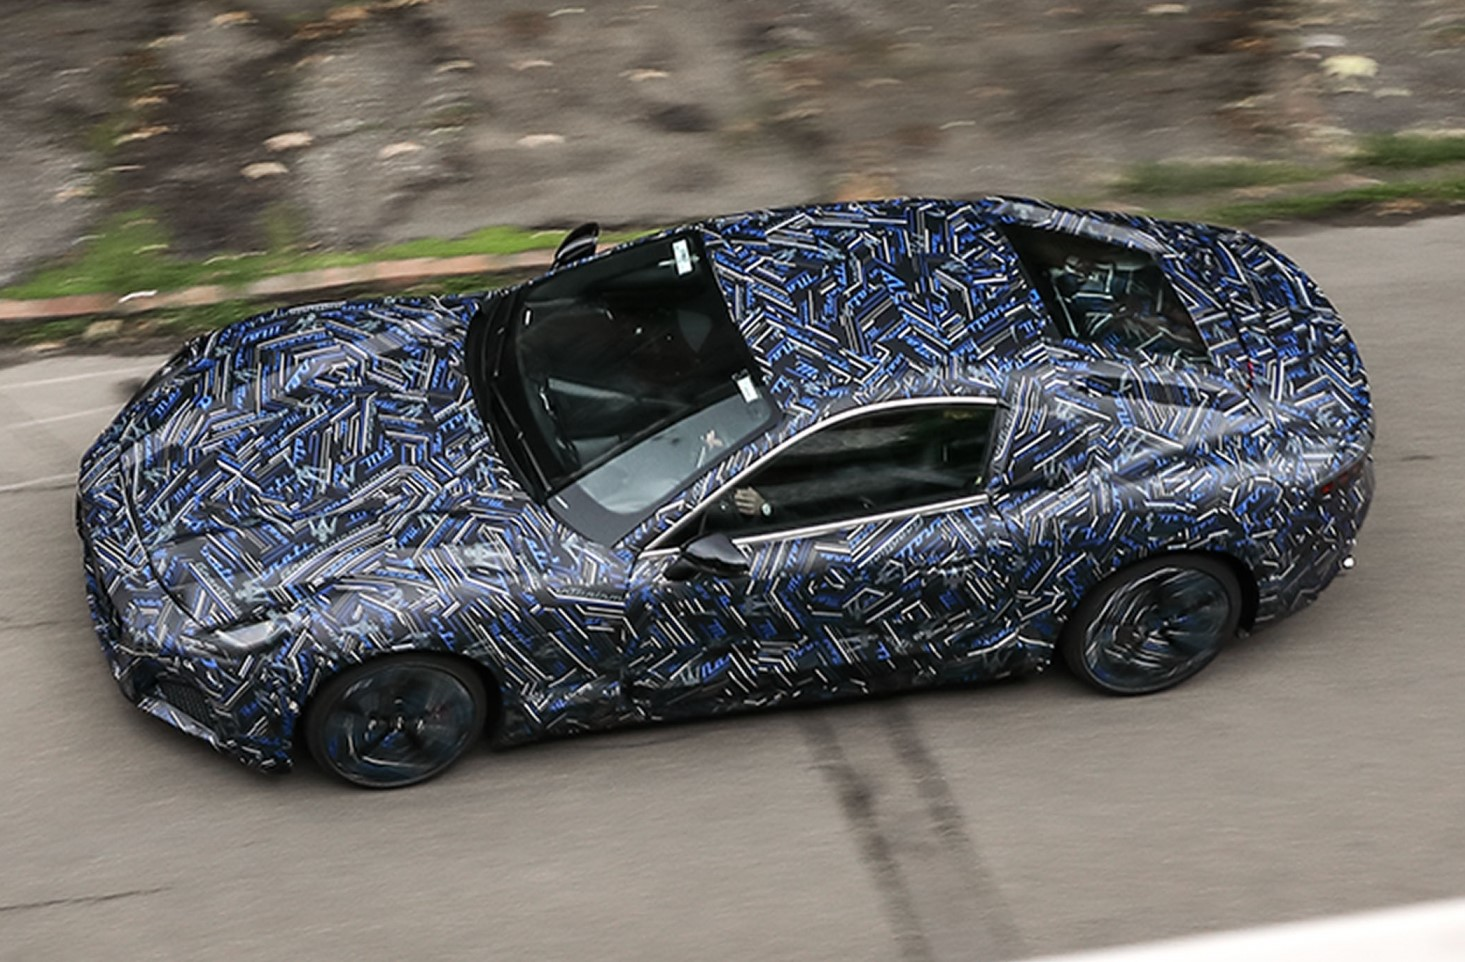 2022 Maserati GranTurismo Ditches Rumbling V8 for Electric Motors – Launching Soon